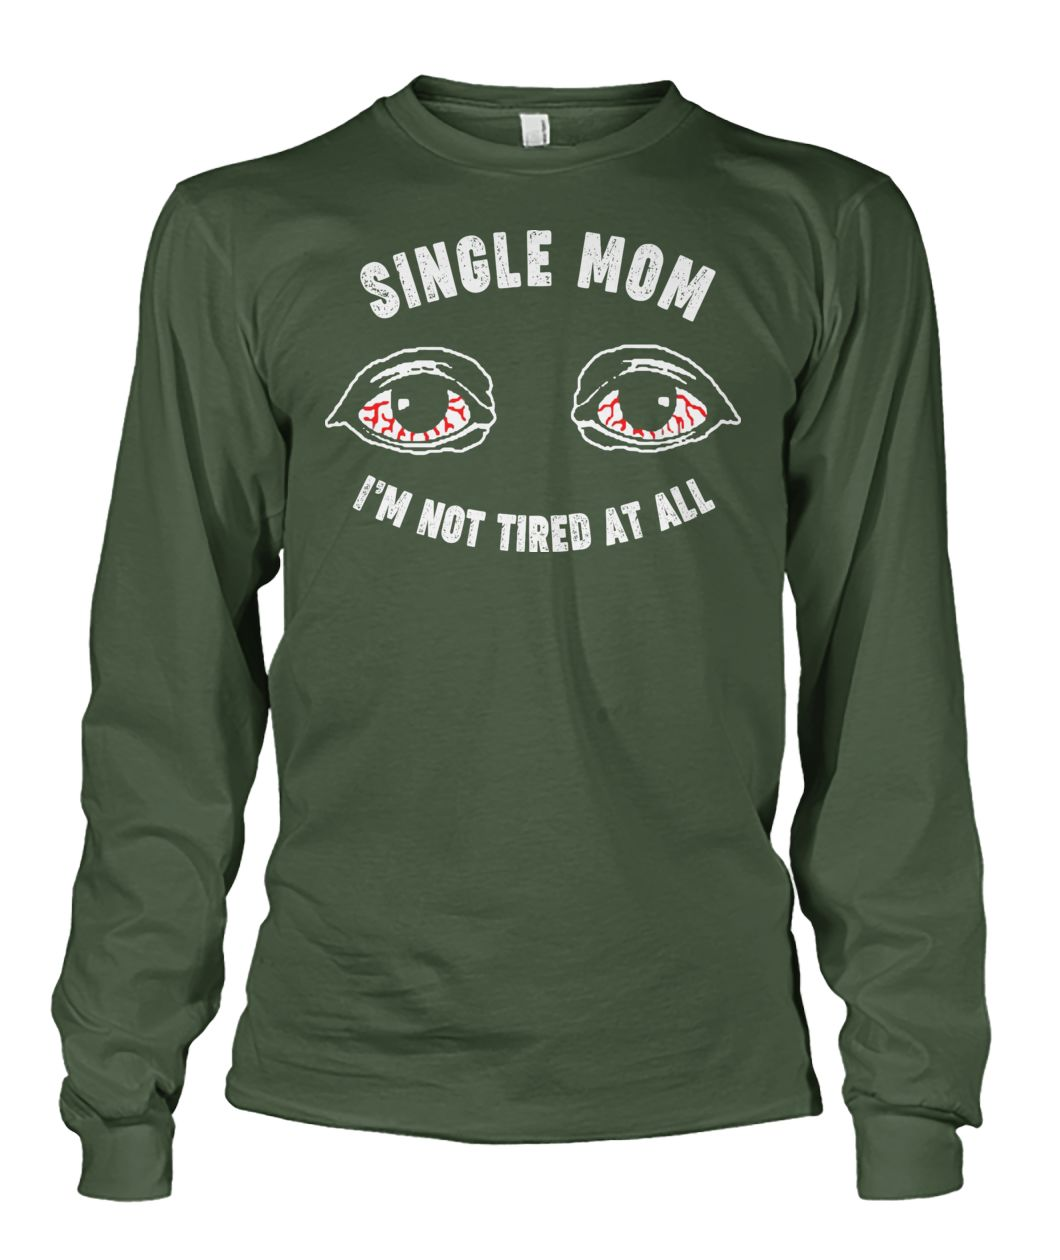 Single mom I'm not tired at all unisex long sleeve